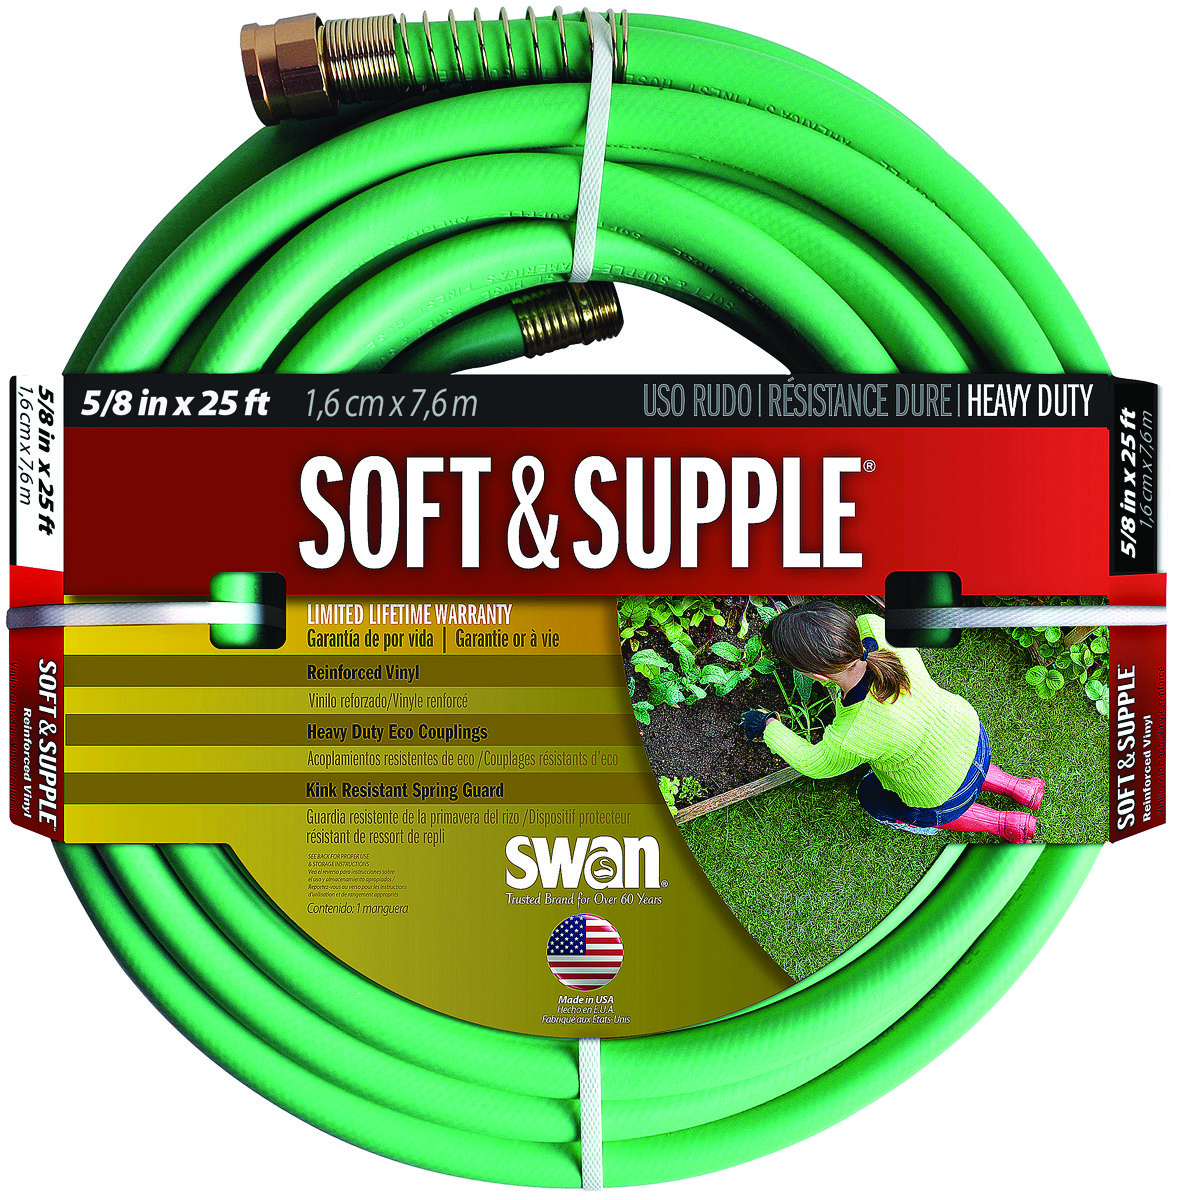 e343ccef11f7 Colorite Swan SNSS58025 Soft   Supple Garden Hose Premium 5 8 Inch By 25  Foot Soft And Supple